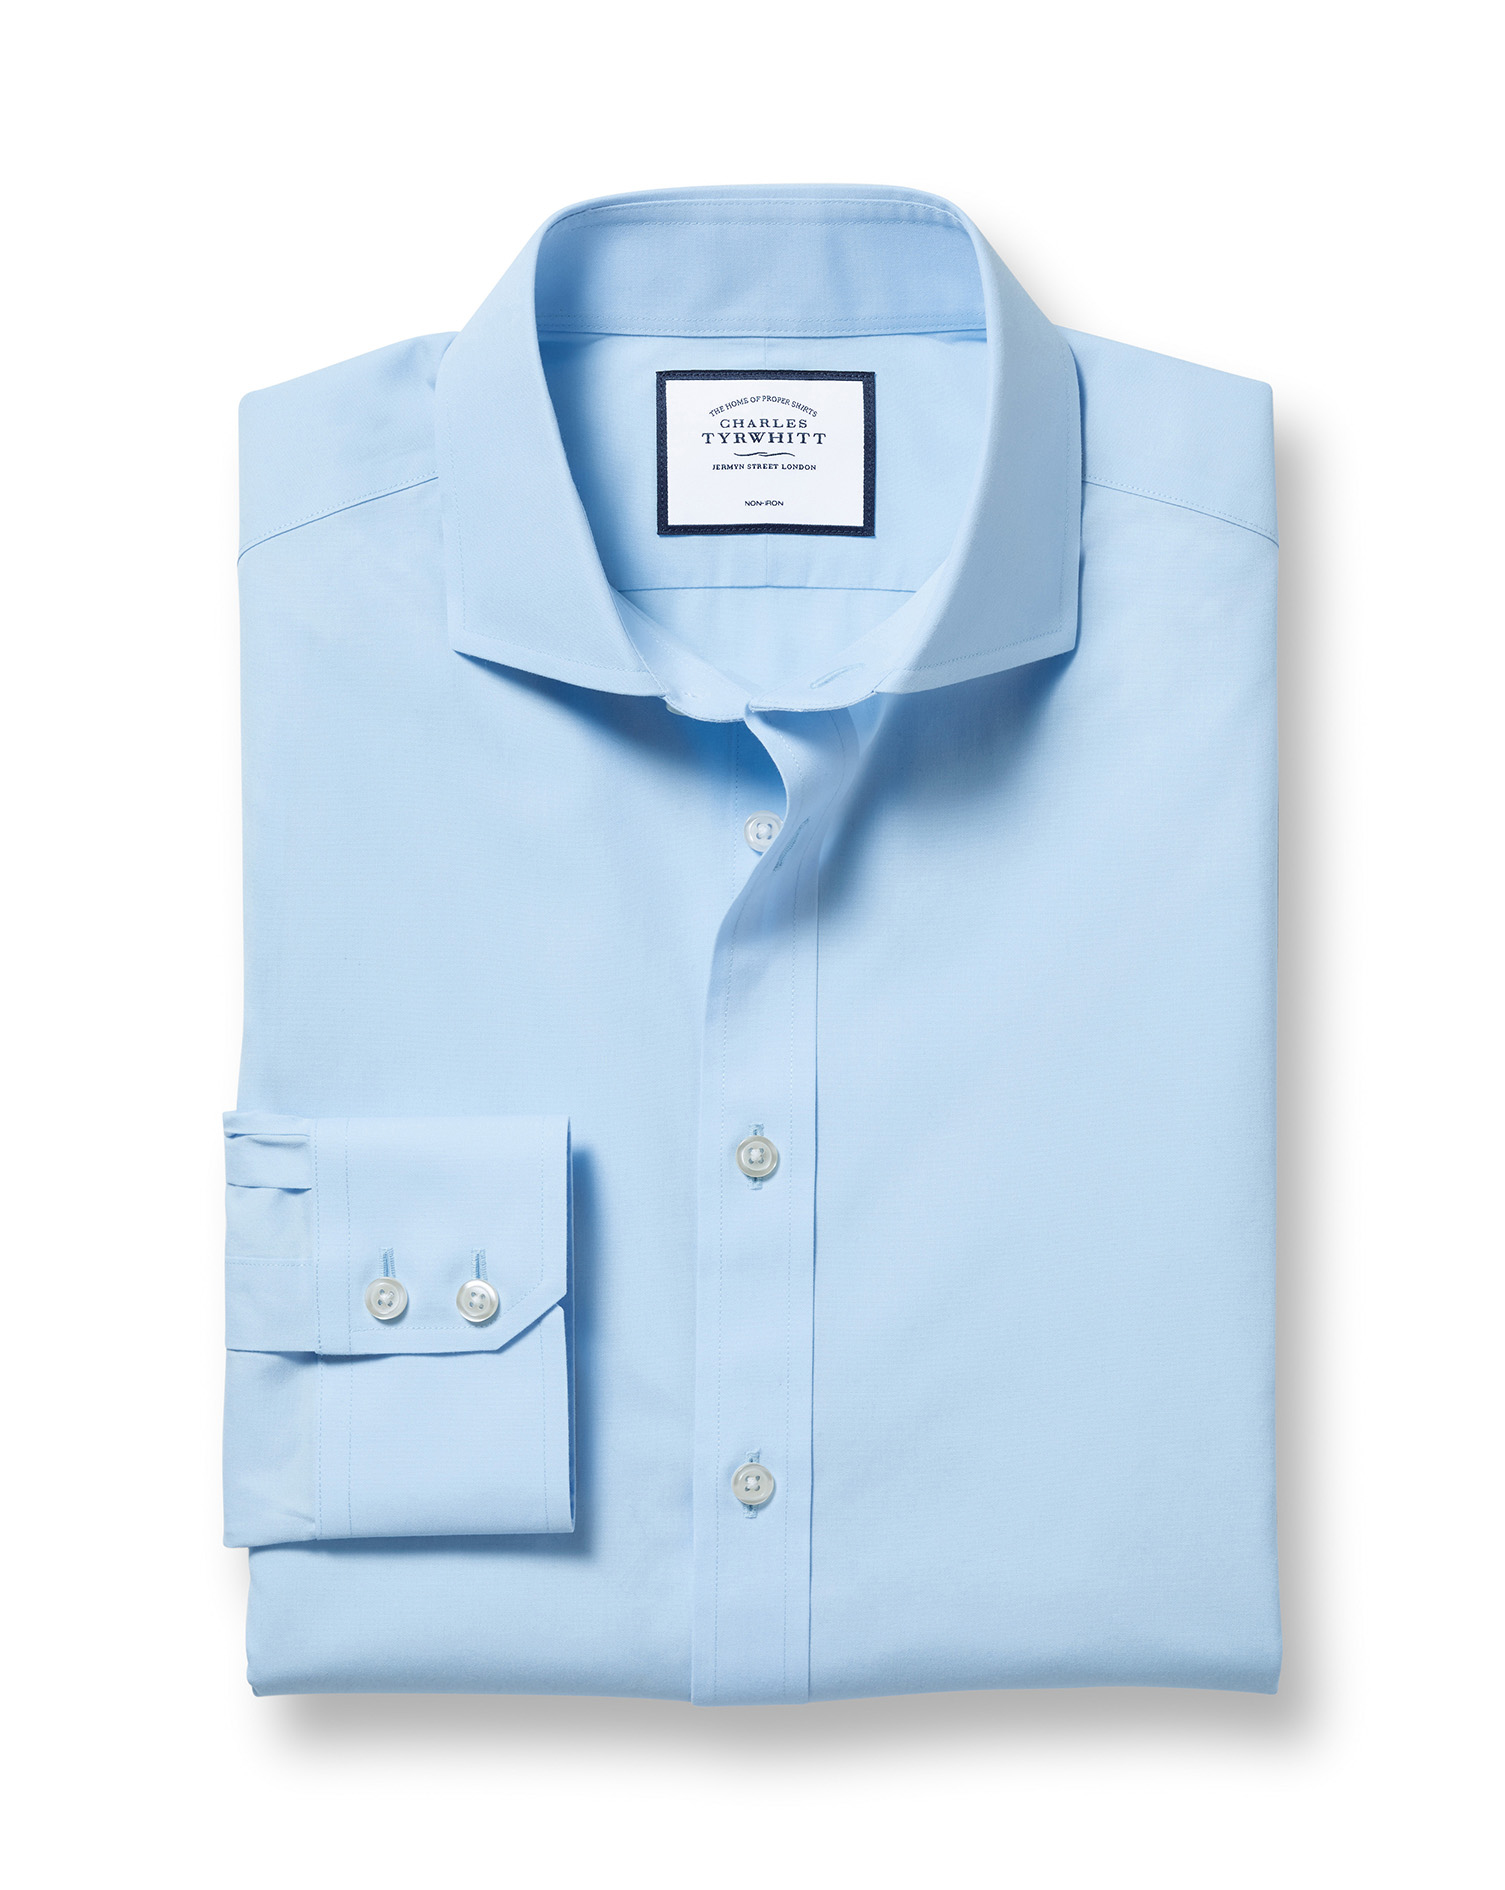 Extra Slim Fit Cutaway Non-Iron Poplin Sky Blue Cotton Formal Shirt Double Cuff Size 16.5/36 by Char